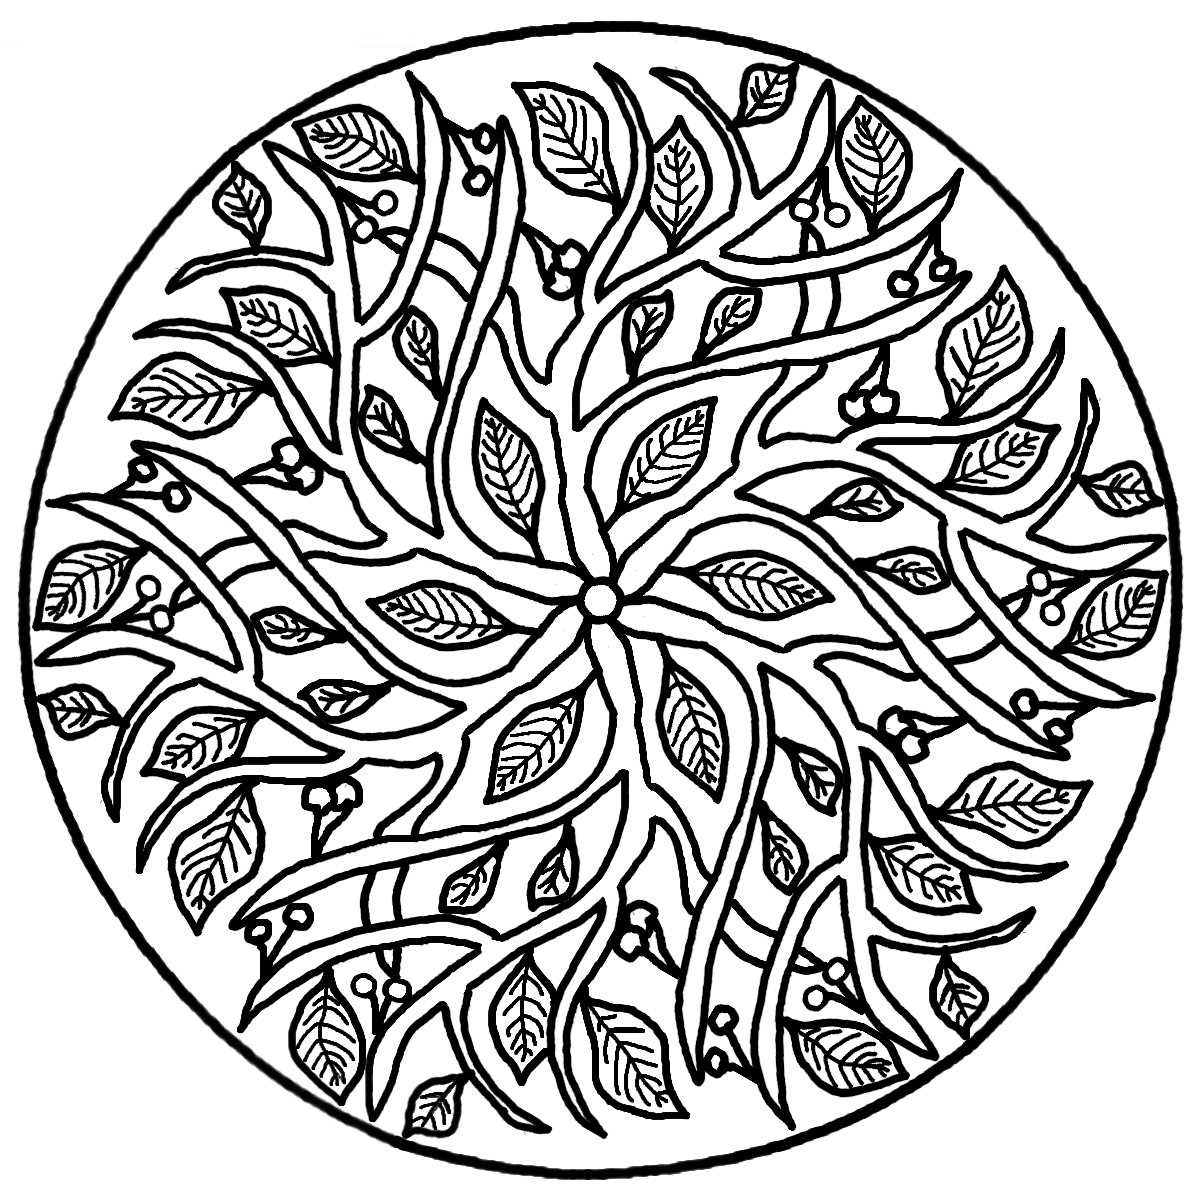 Mandala Coloring Pages (9) - Coloring Kids